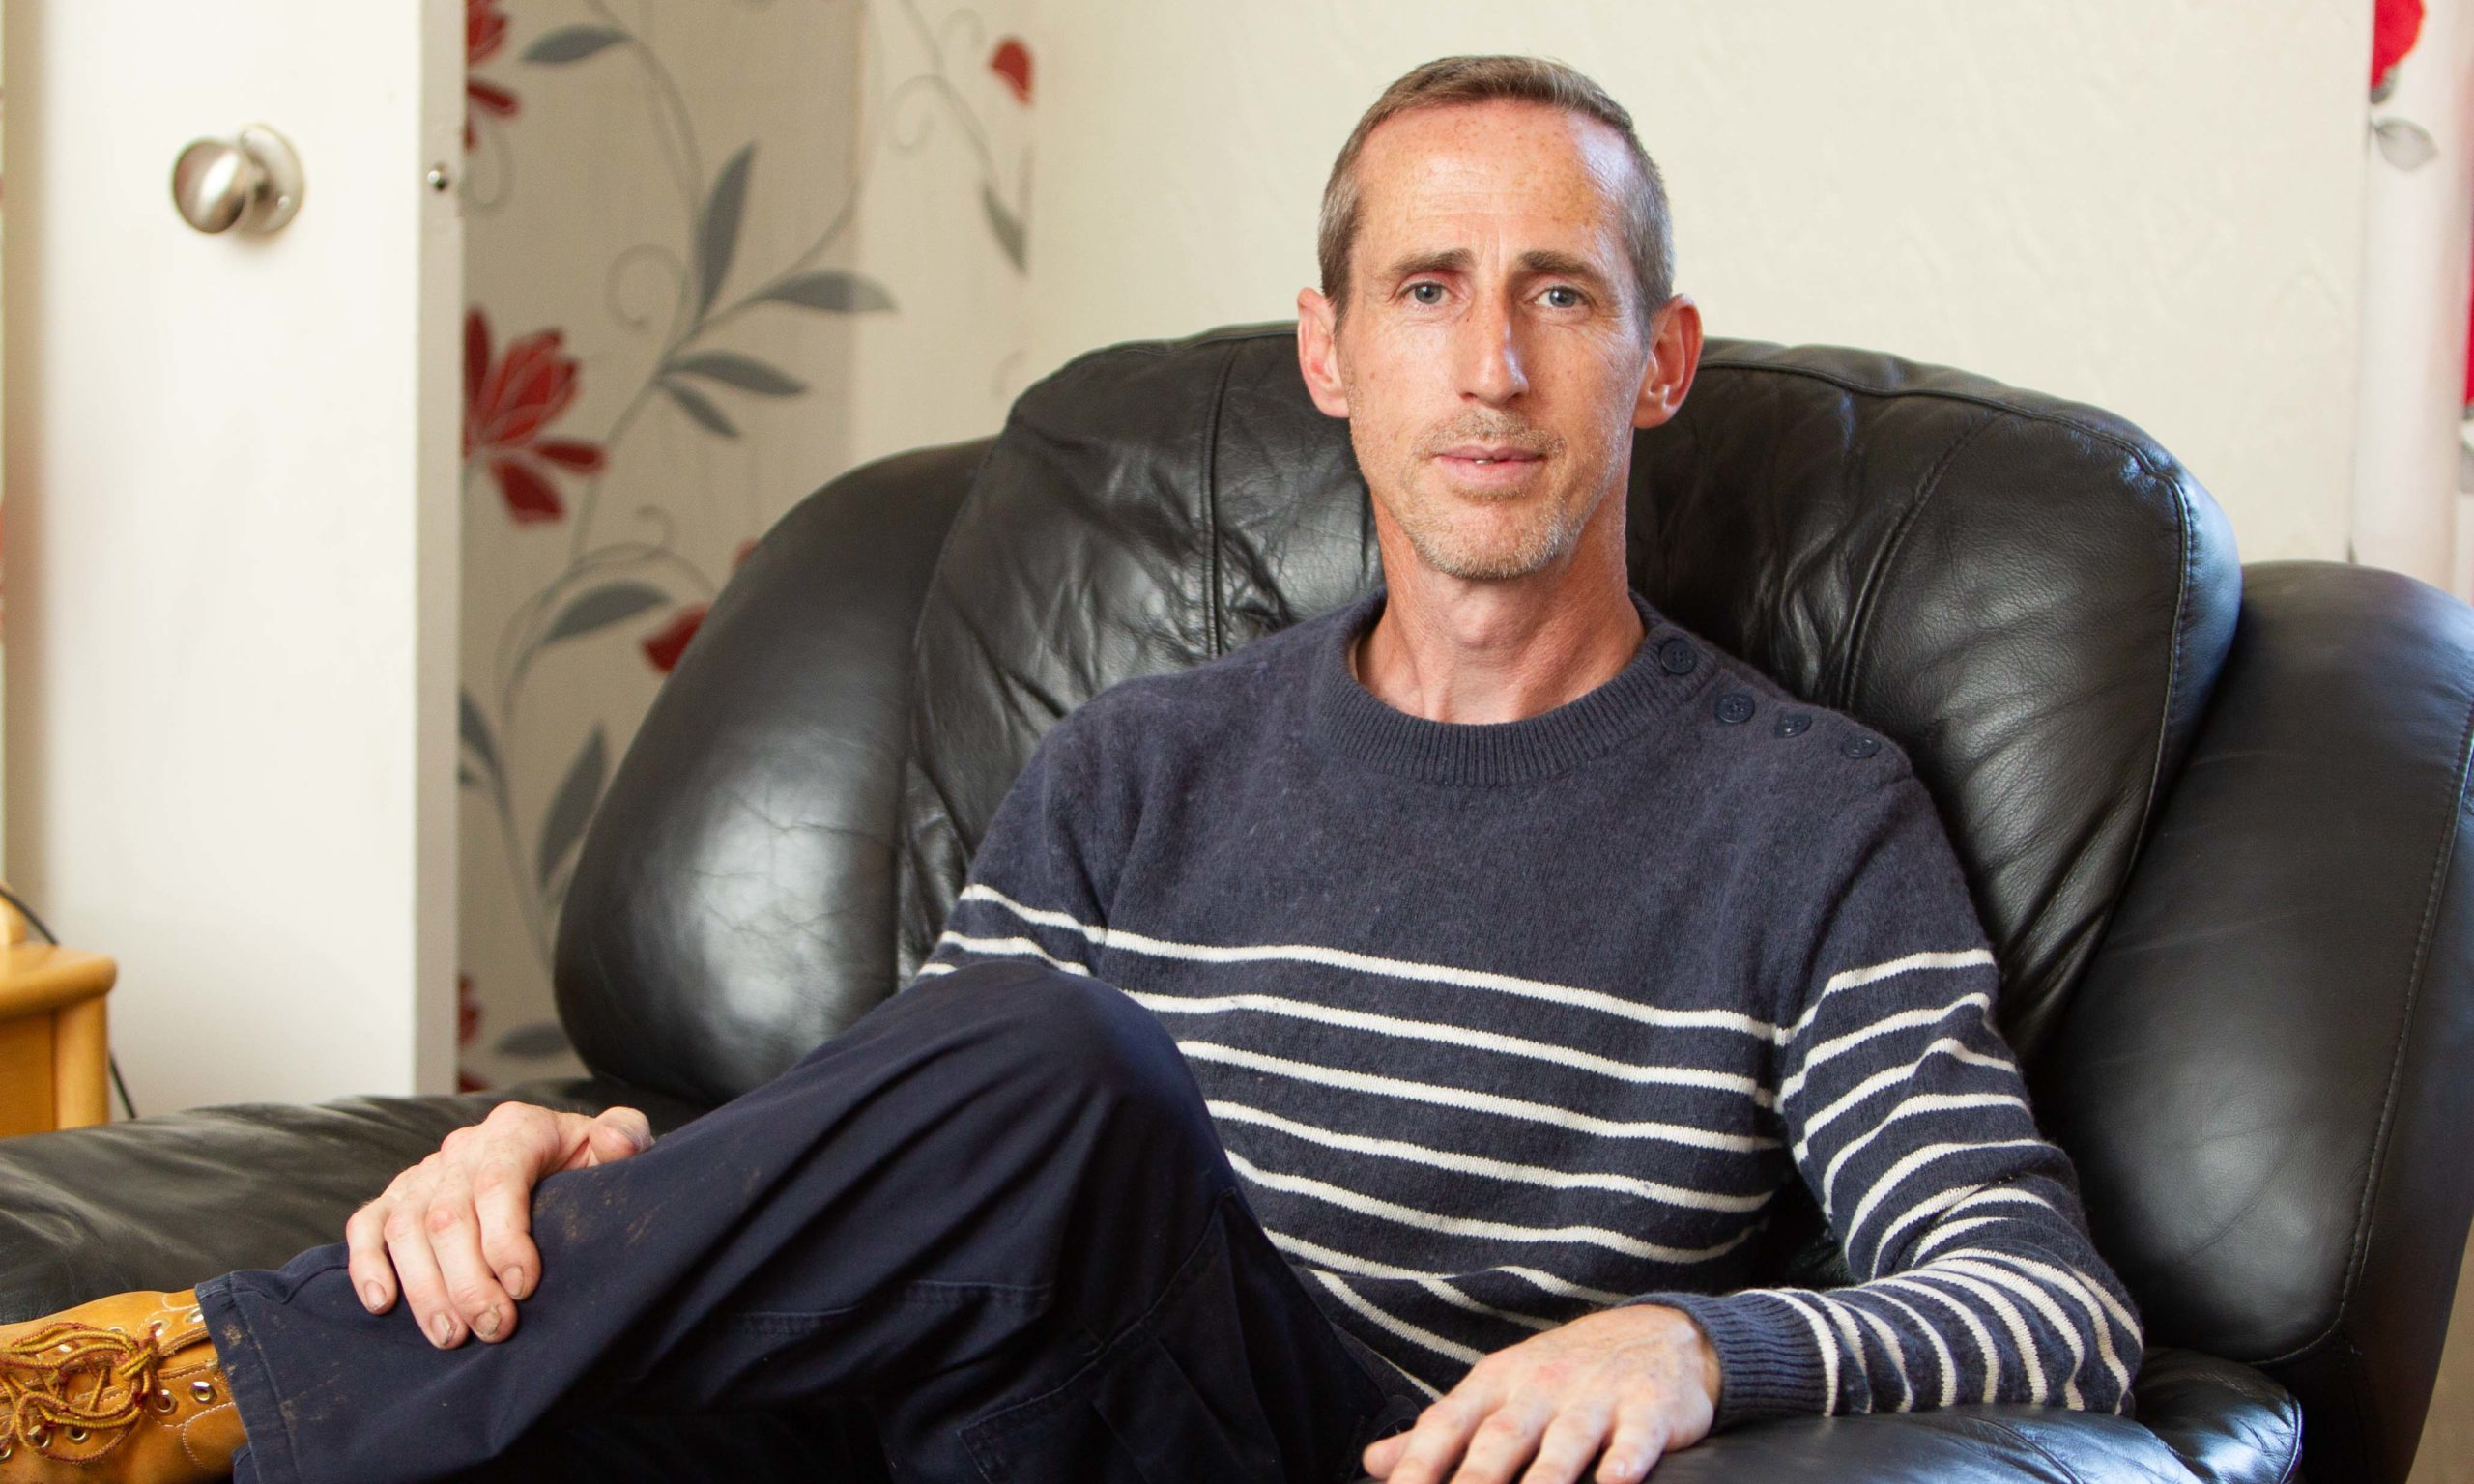 Kenny Muirhead who has been sacked from Hermes after 13 years with the delivery firm.